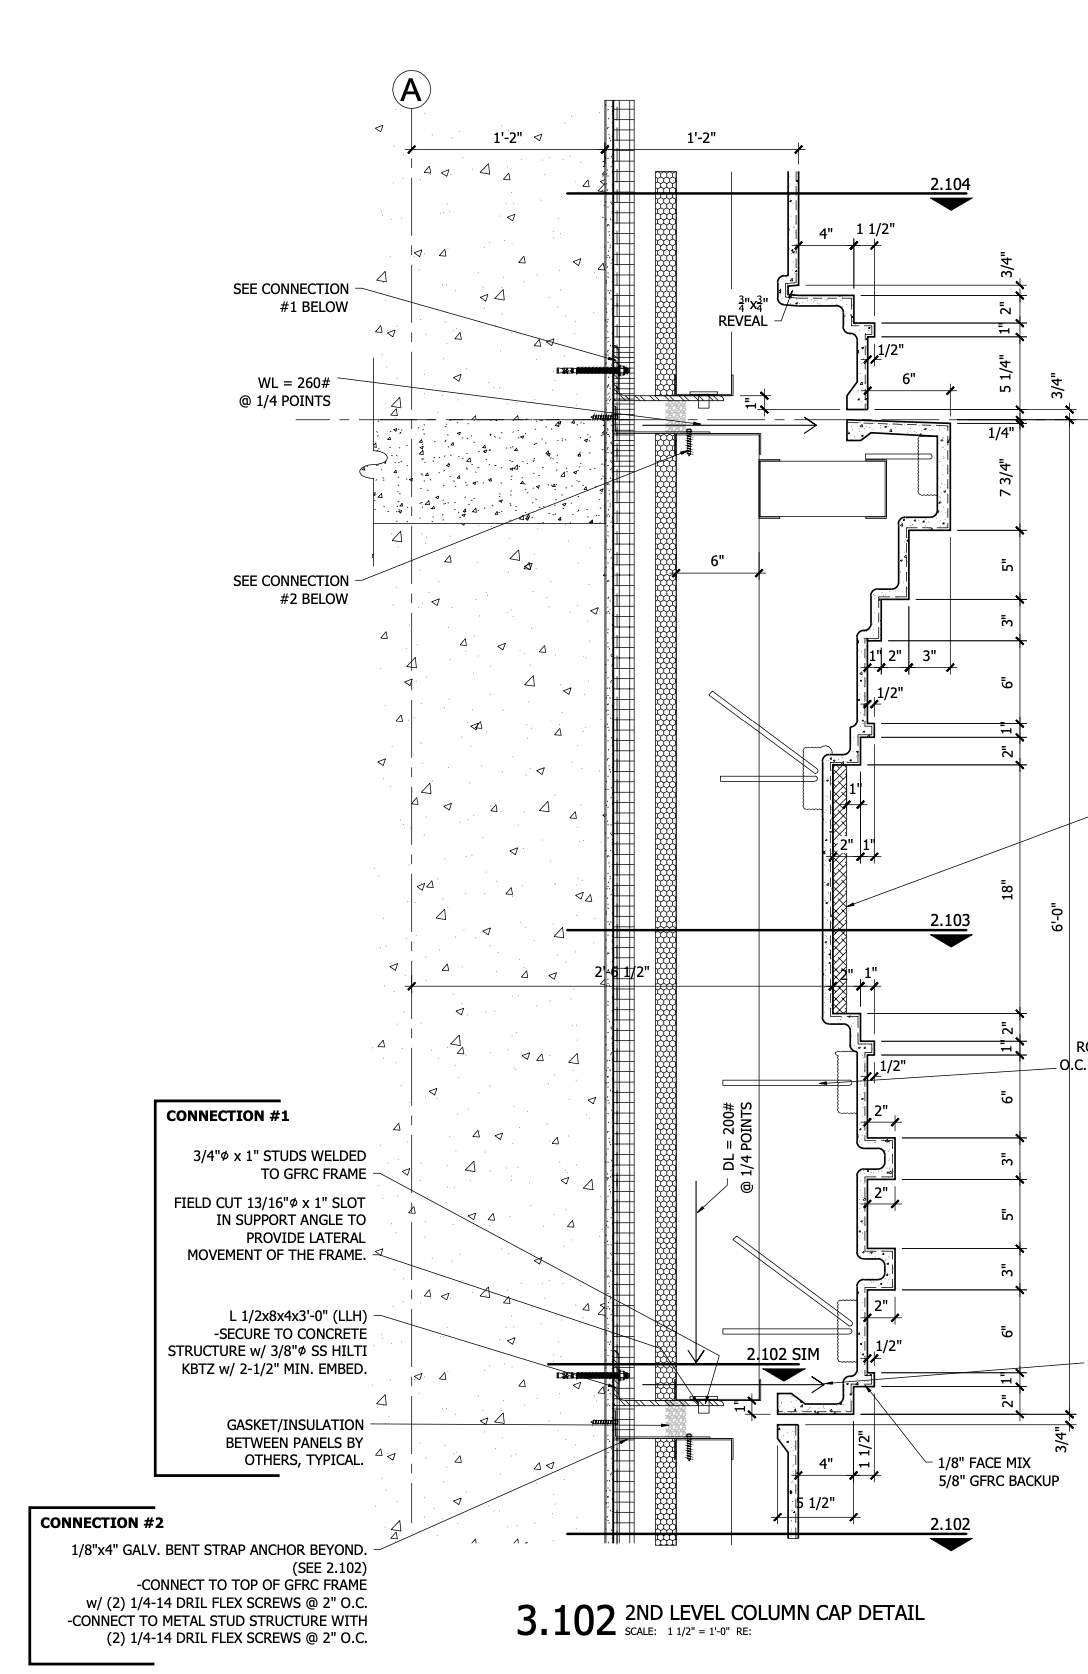 Marriott Hotel CAD Drawing - Section 3_103 - second level column detail